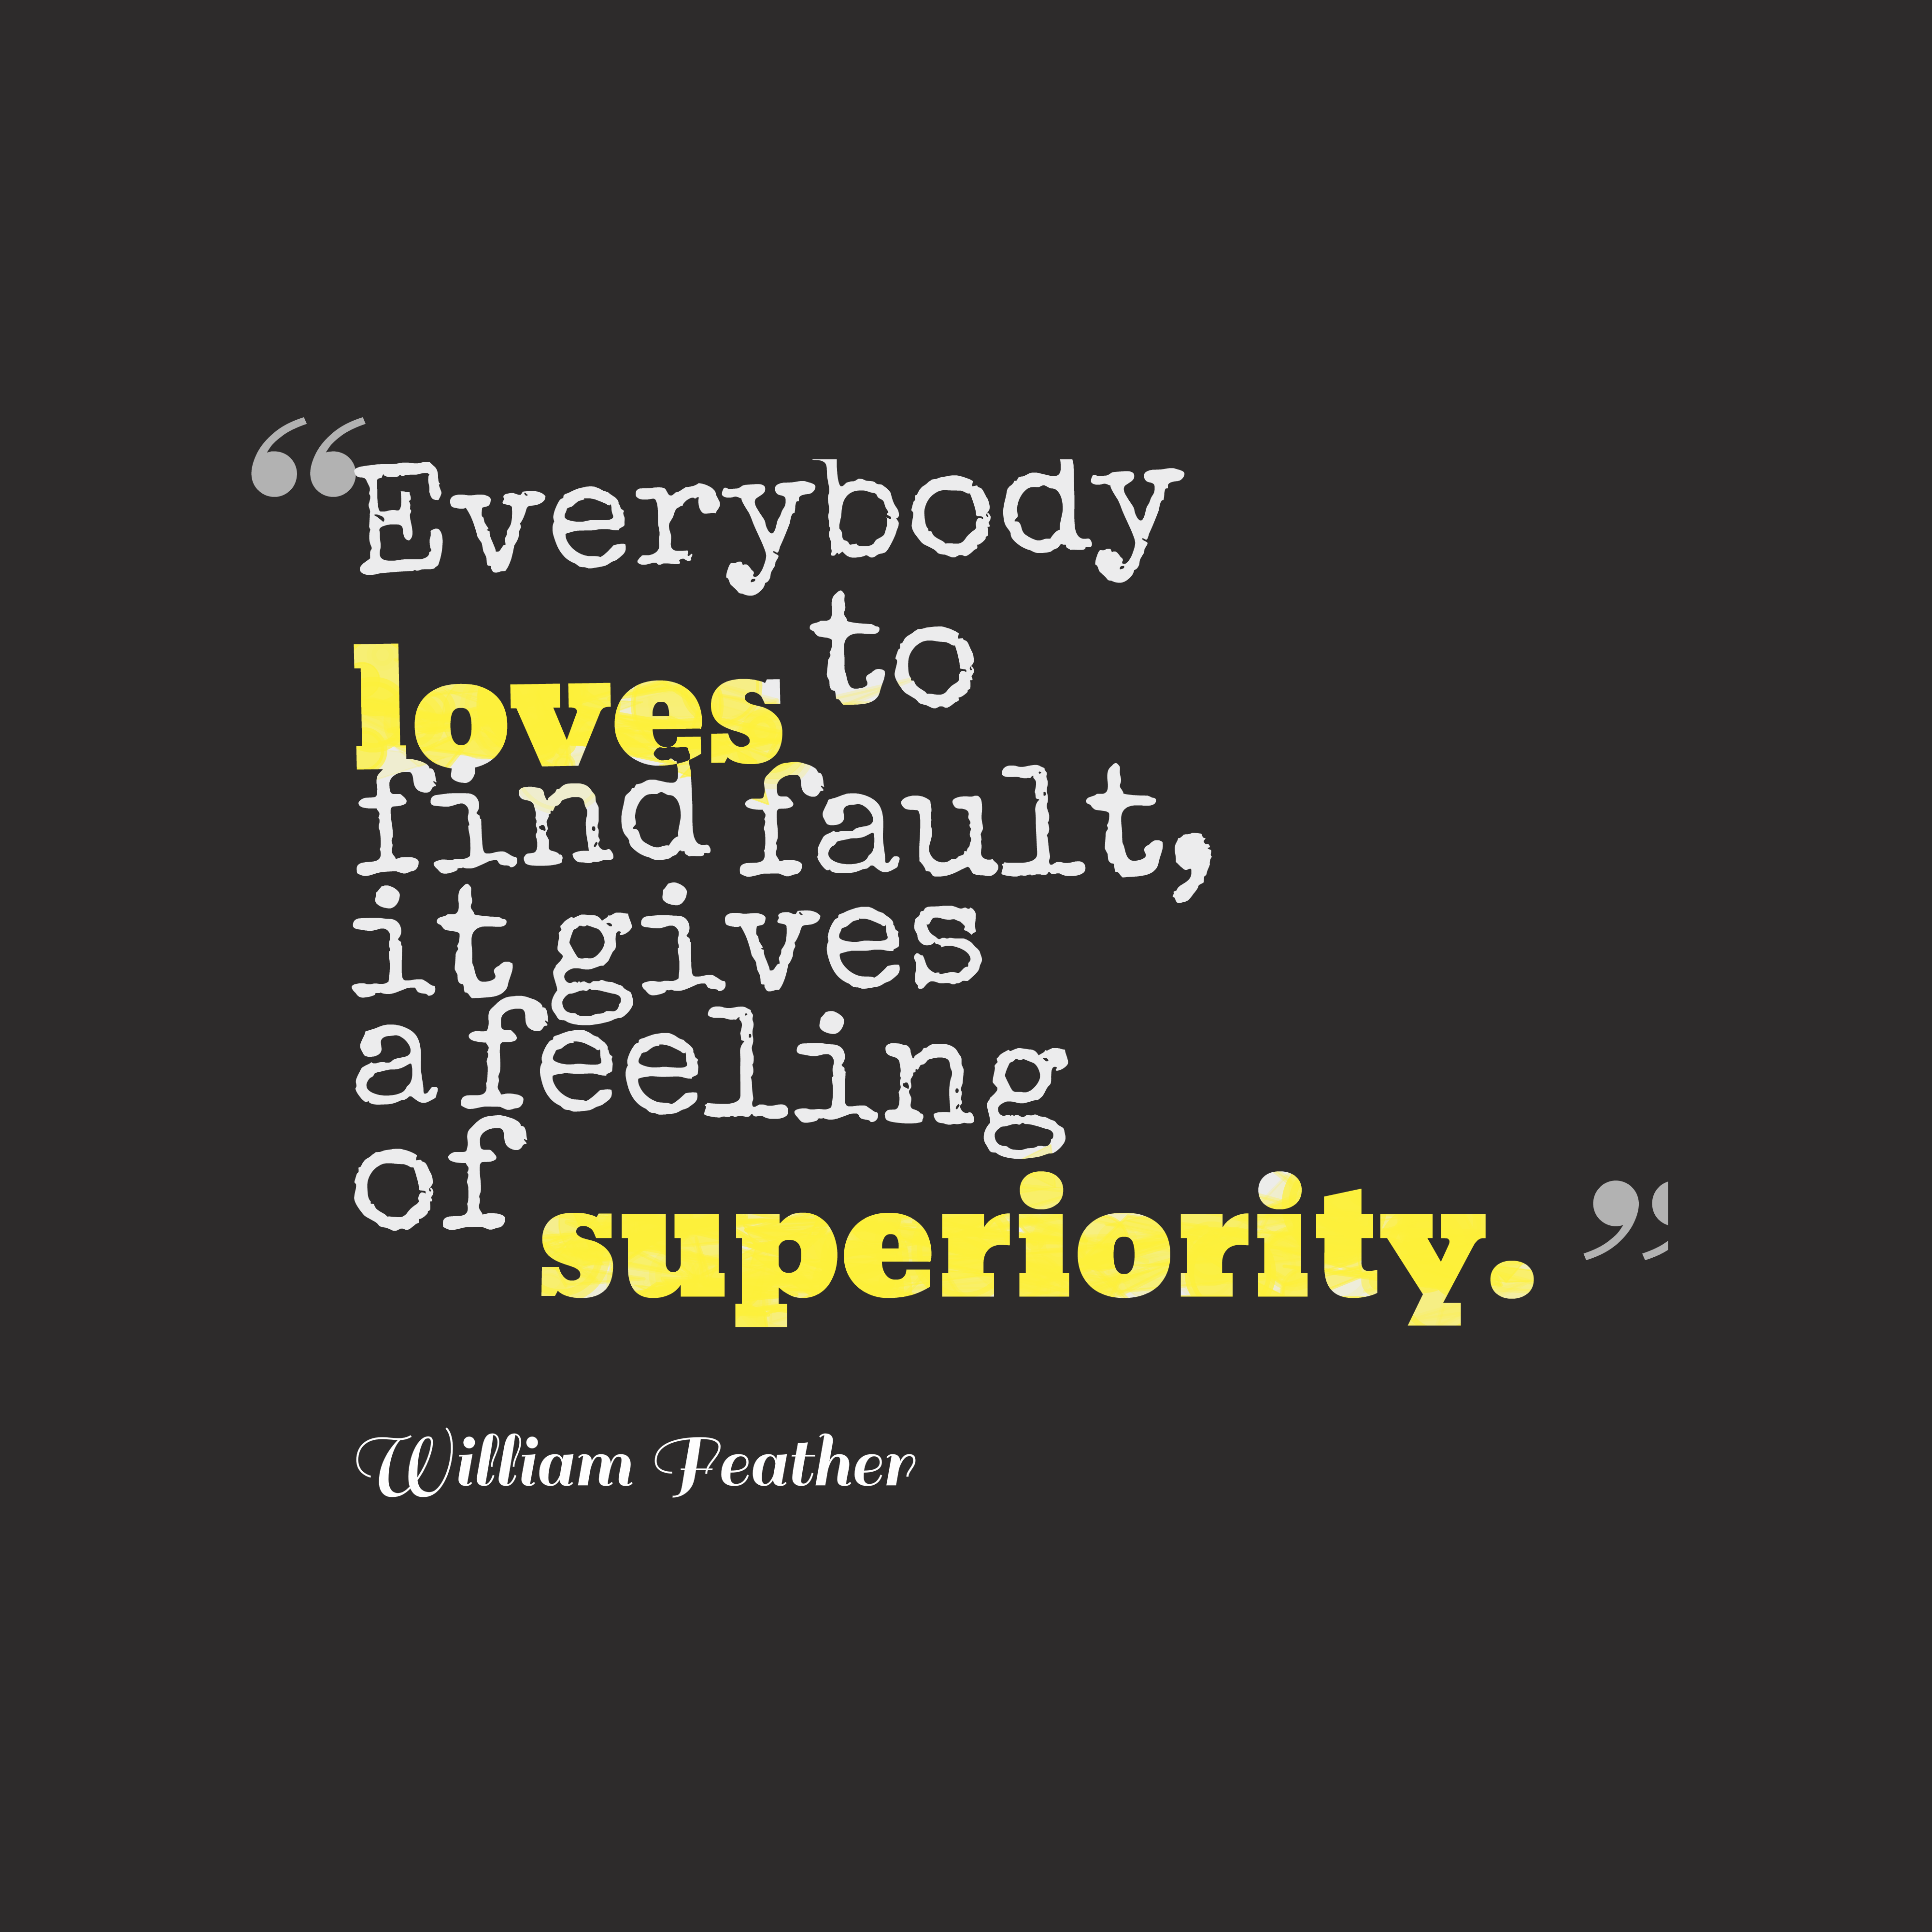 Quotes image of Everybody loves to find fault, it gives a feeling of superiority.